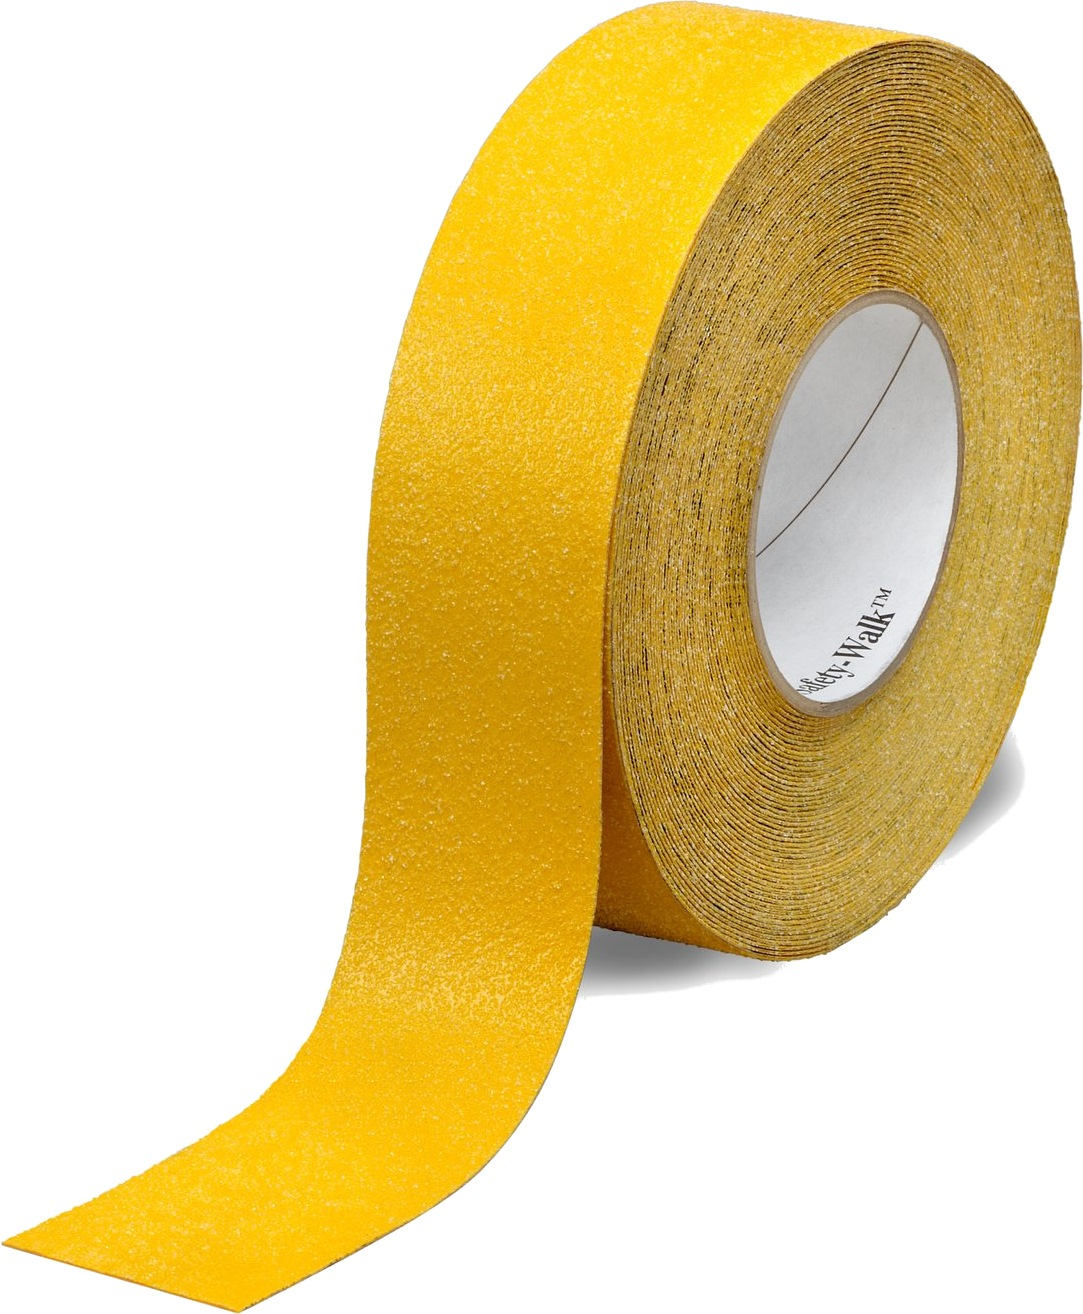 3M SAFETY WALK CONFORMABLE TREAD YELLOW 530 2